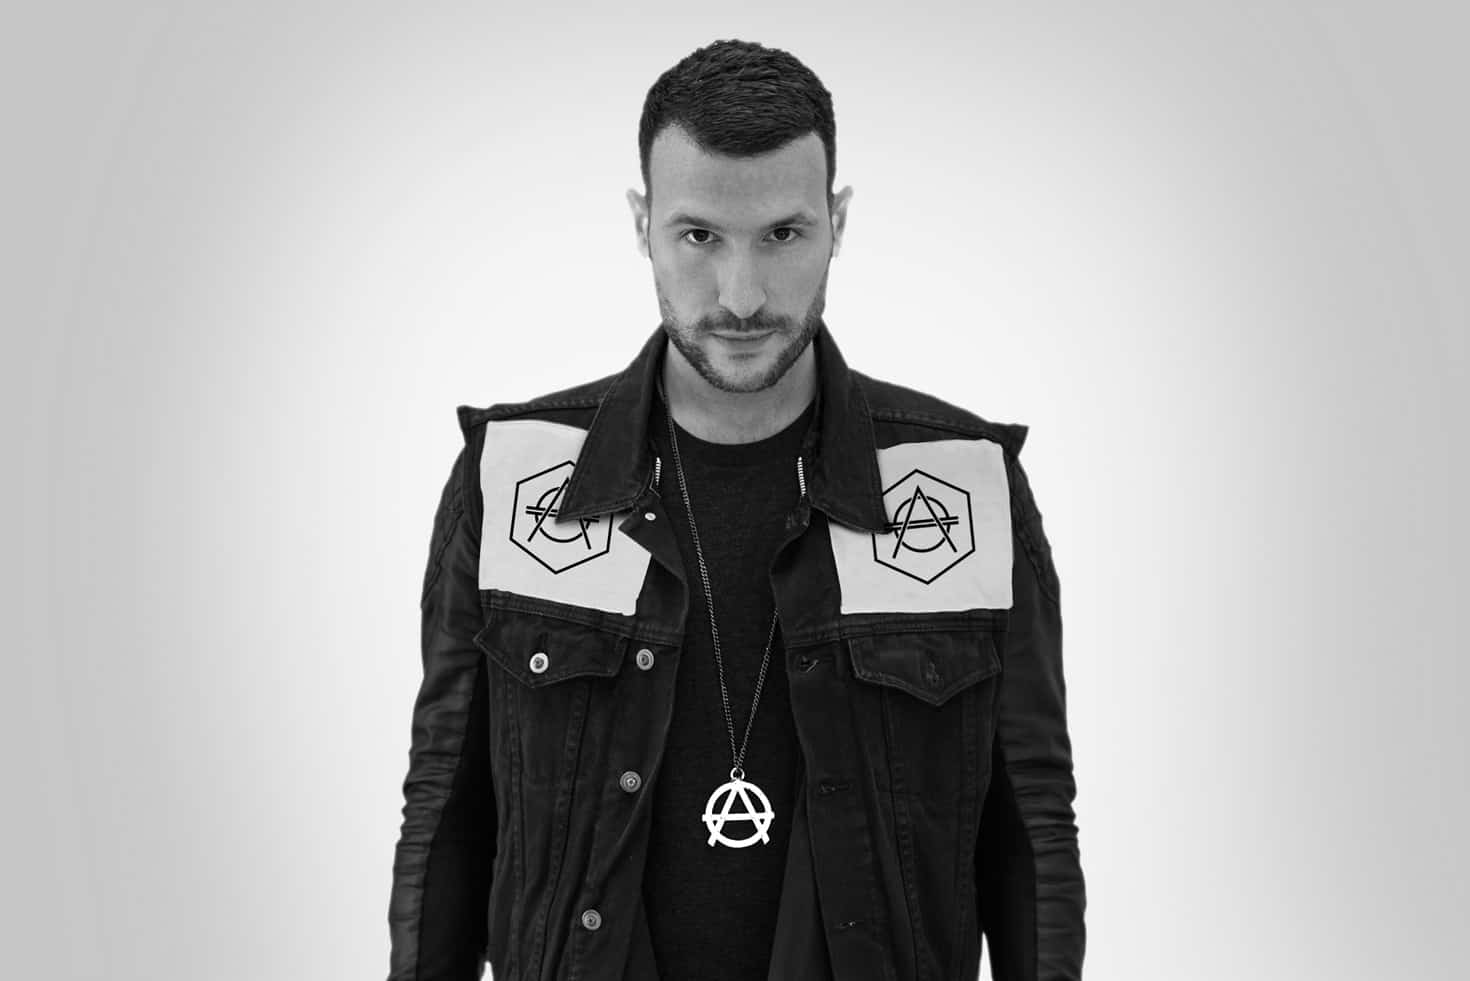 Save A Little Love - Something Just Like This (Don Diablo Remix) - Children Of A Miracle (Don Diablo's VIP Mix) - Echoes